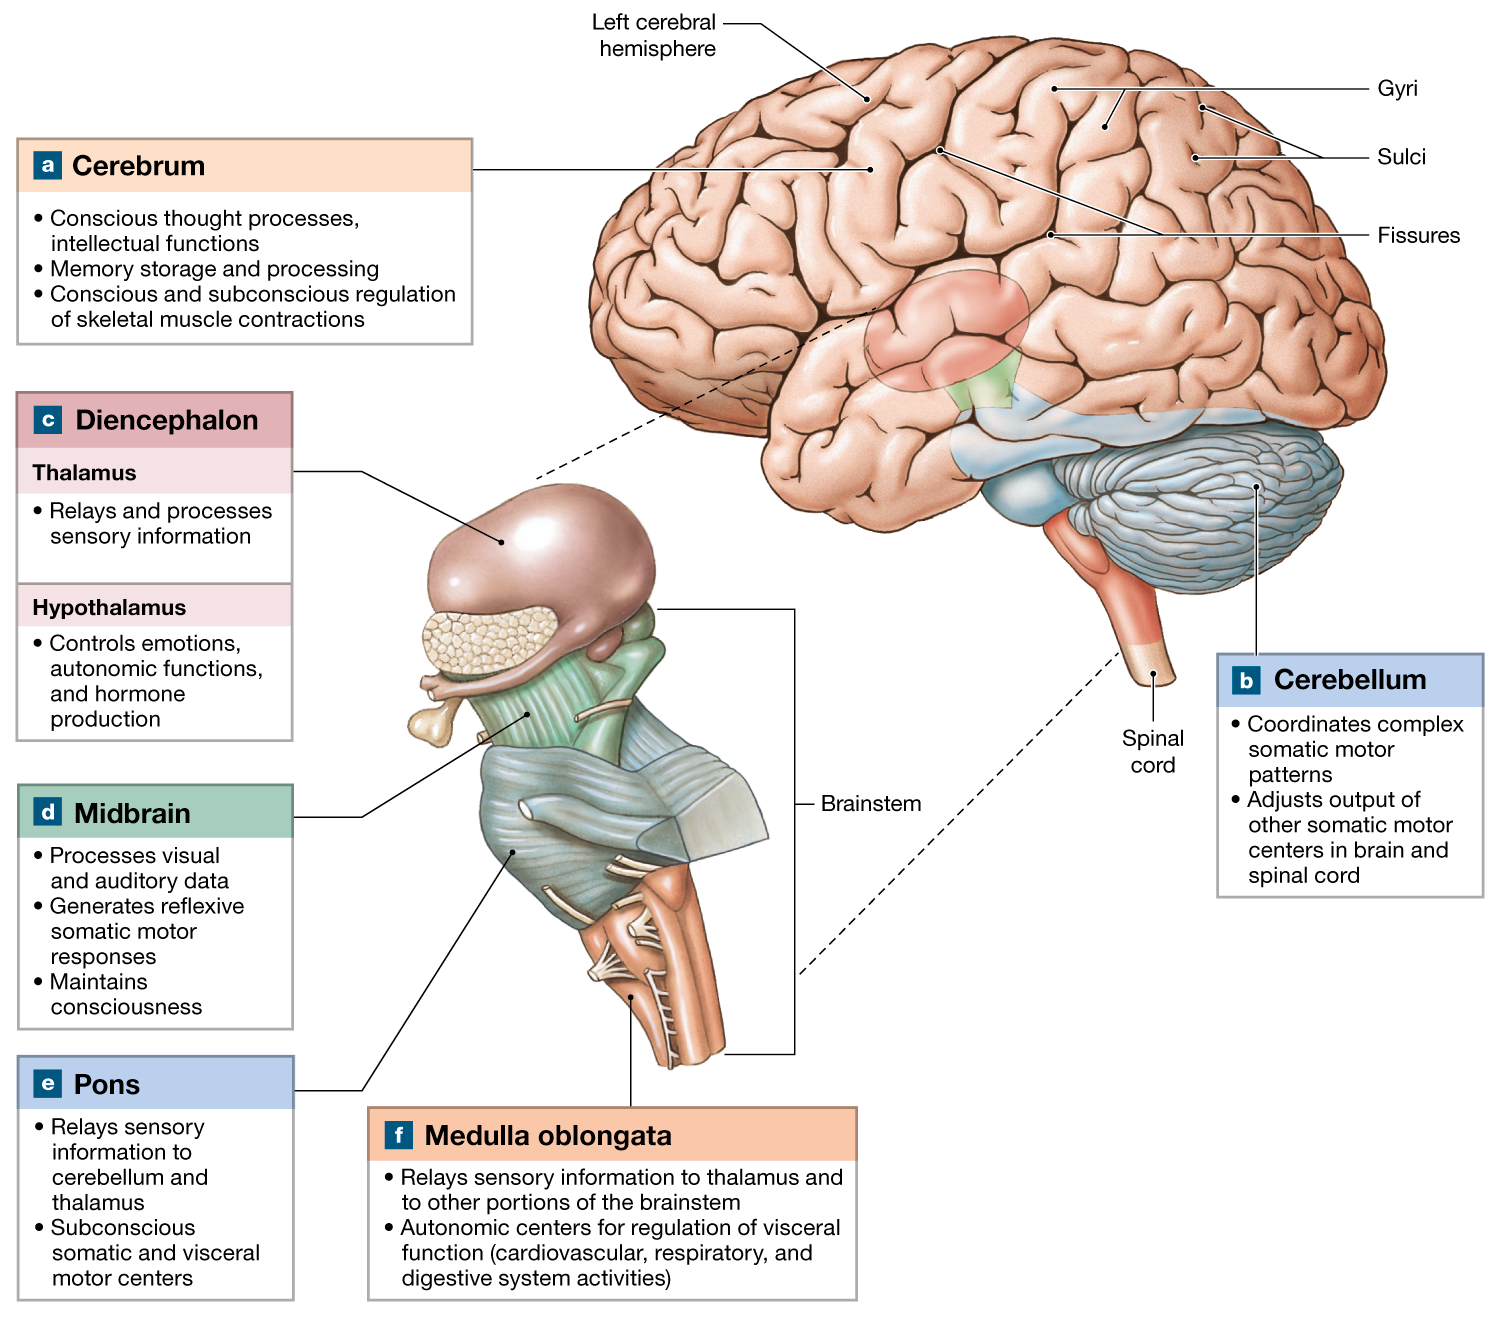 14.1: The brain develops four major regions: the cerebrum ...